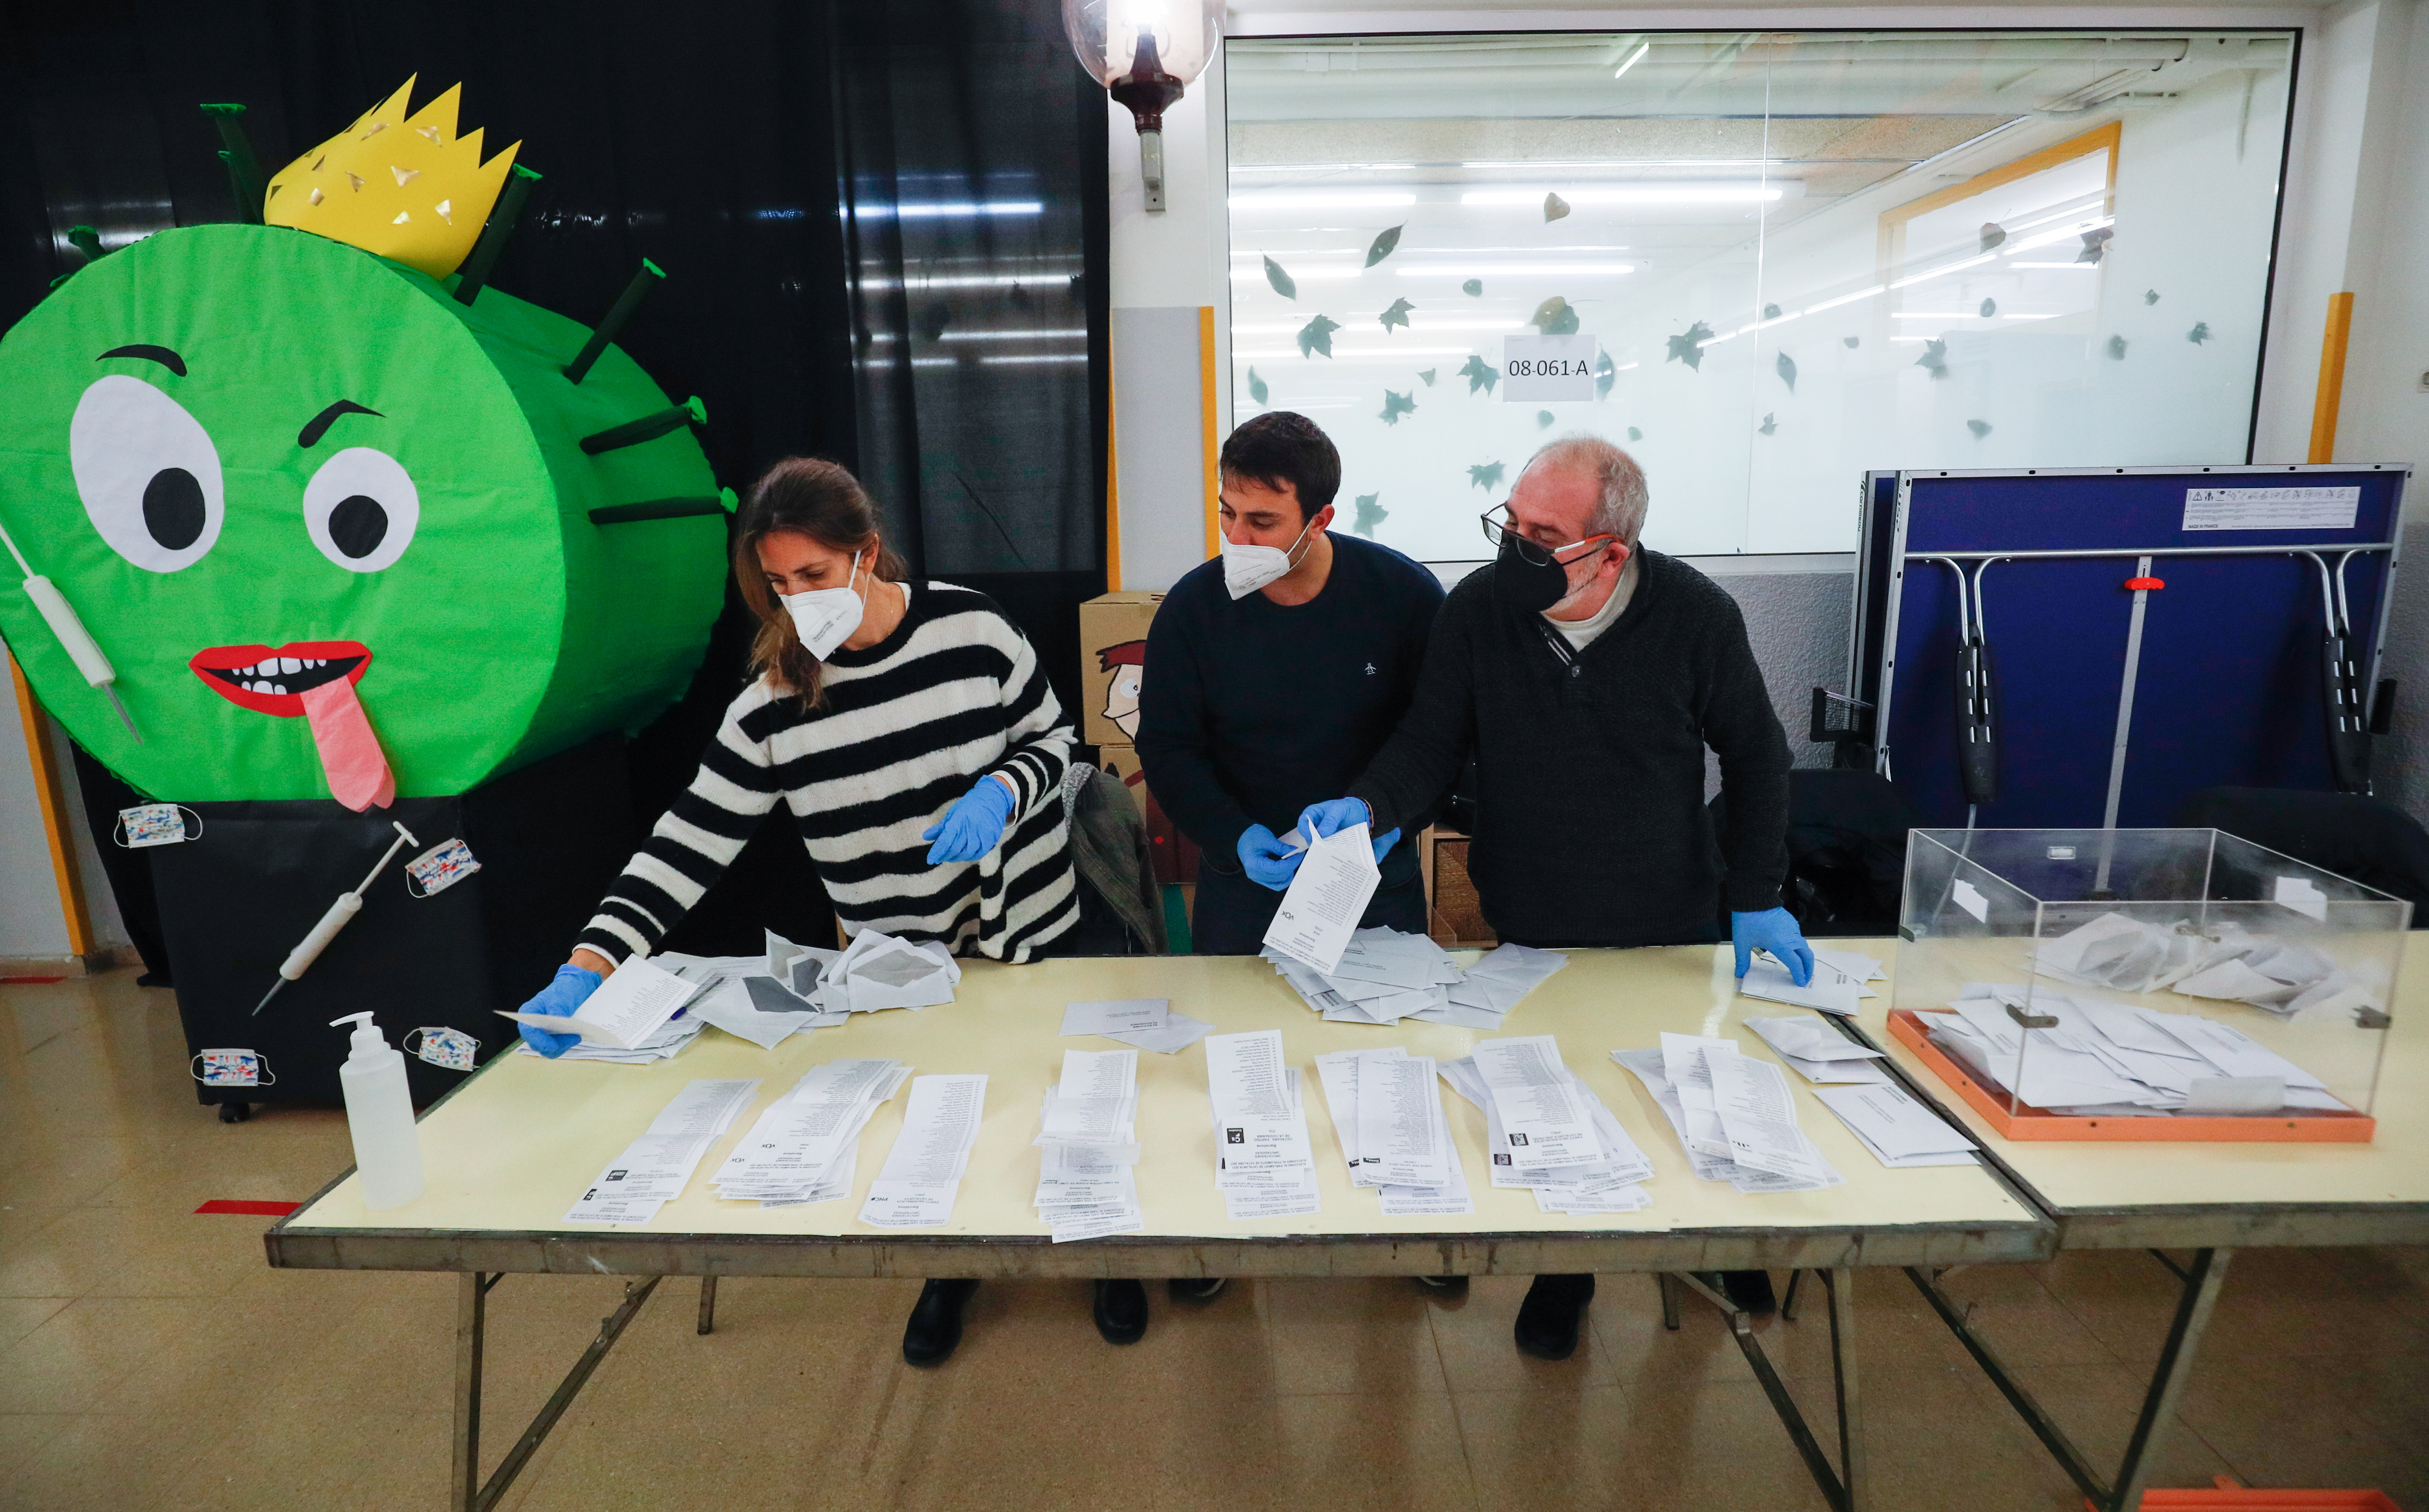 Electoral workers count ballots at a polling station during regional election in Catalonia, amid the outbreak of the coronavirus disease (COVID-19), in Barcelona, Spain, February 14, 2021. REUTERS/Albert Gea